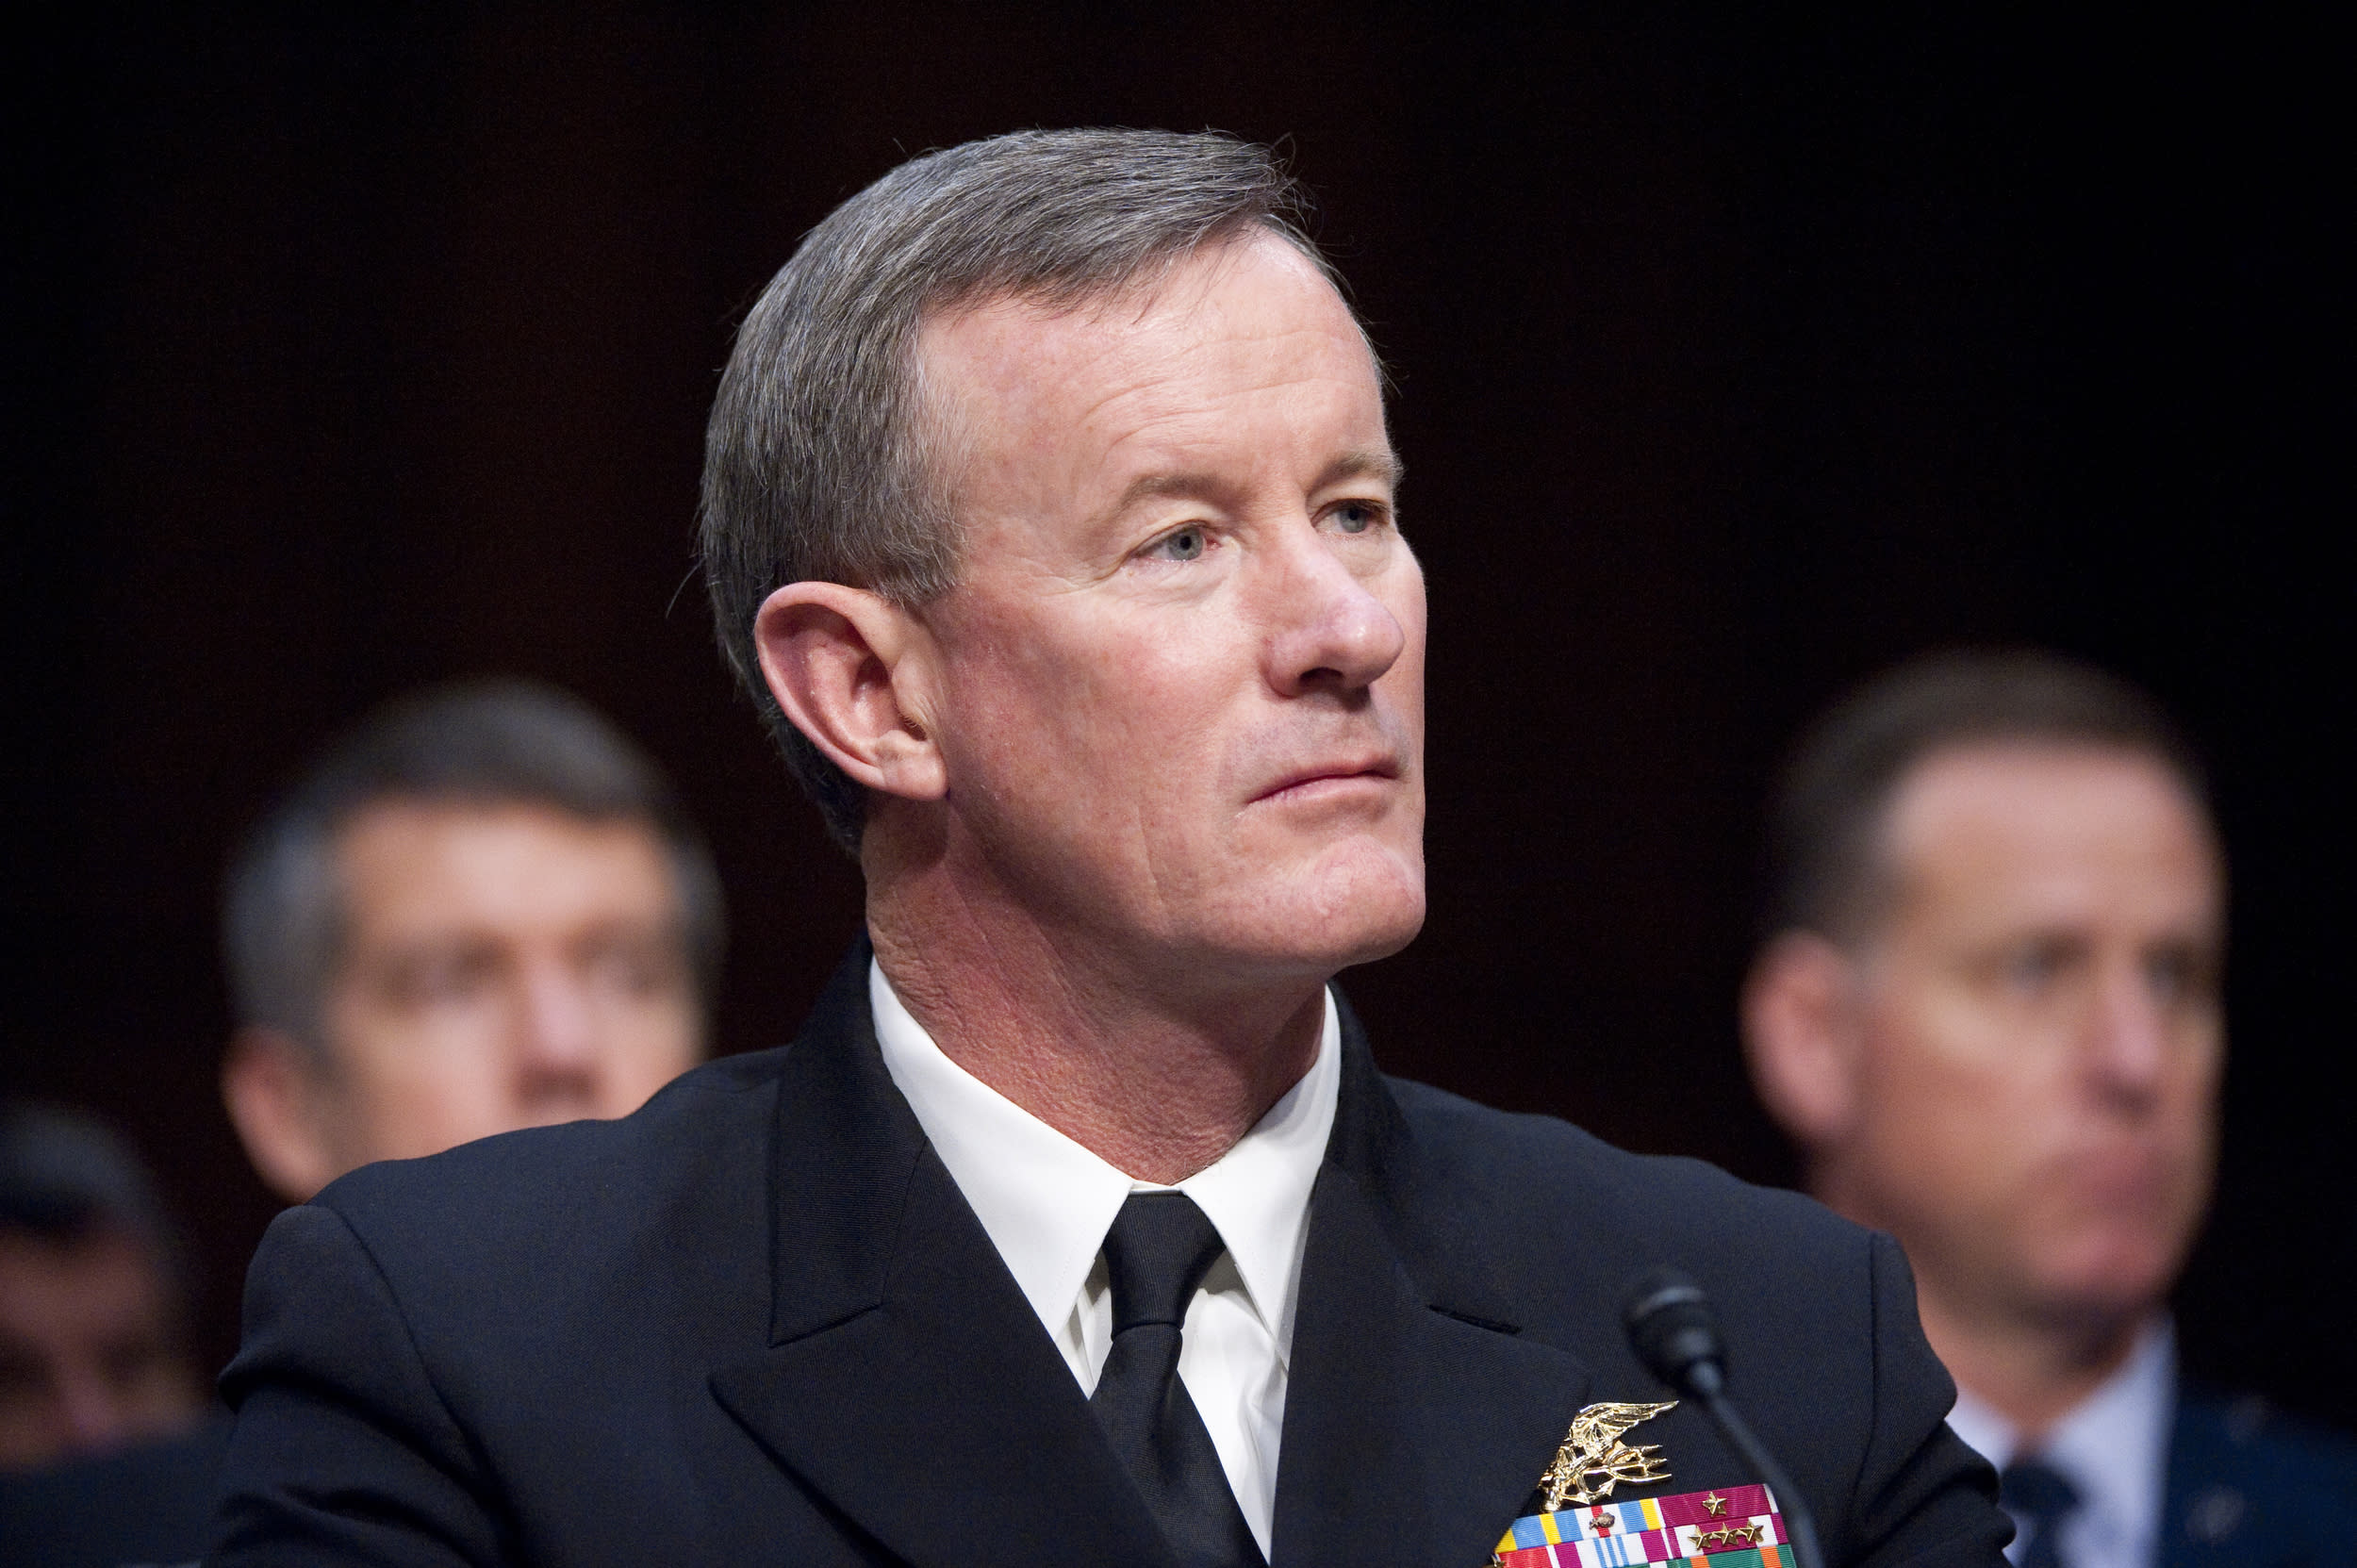 UNITED STATES â MARCH 6: Navy Adm. William McRaven, commander of U.S. Special Operations Command, testifies during the Senate Armed Services Committee hearing on 'The U.S. Central Command and U.S. Special Operations Command in review of the Defense Authorization Request for FY2013 and the Future Years Defense Program' on Tuesday, March 6, 2012. (Photo By Bill Clark/CQ Roll Call)